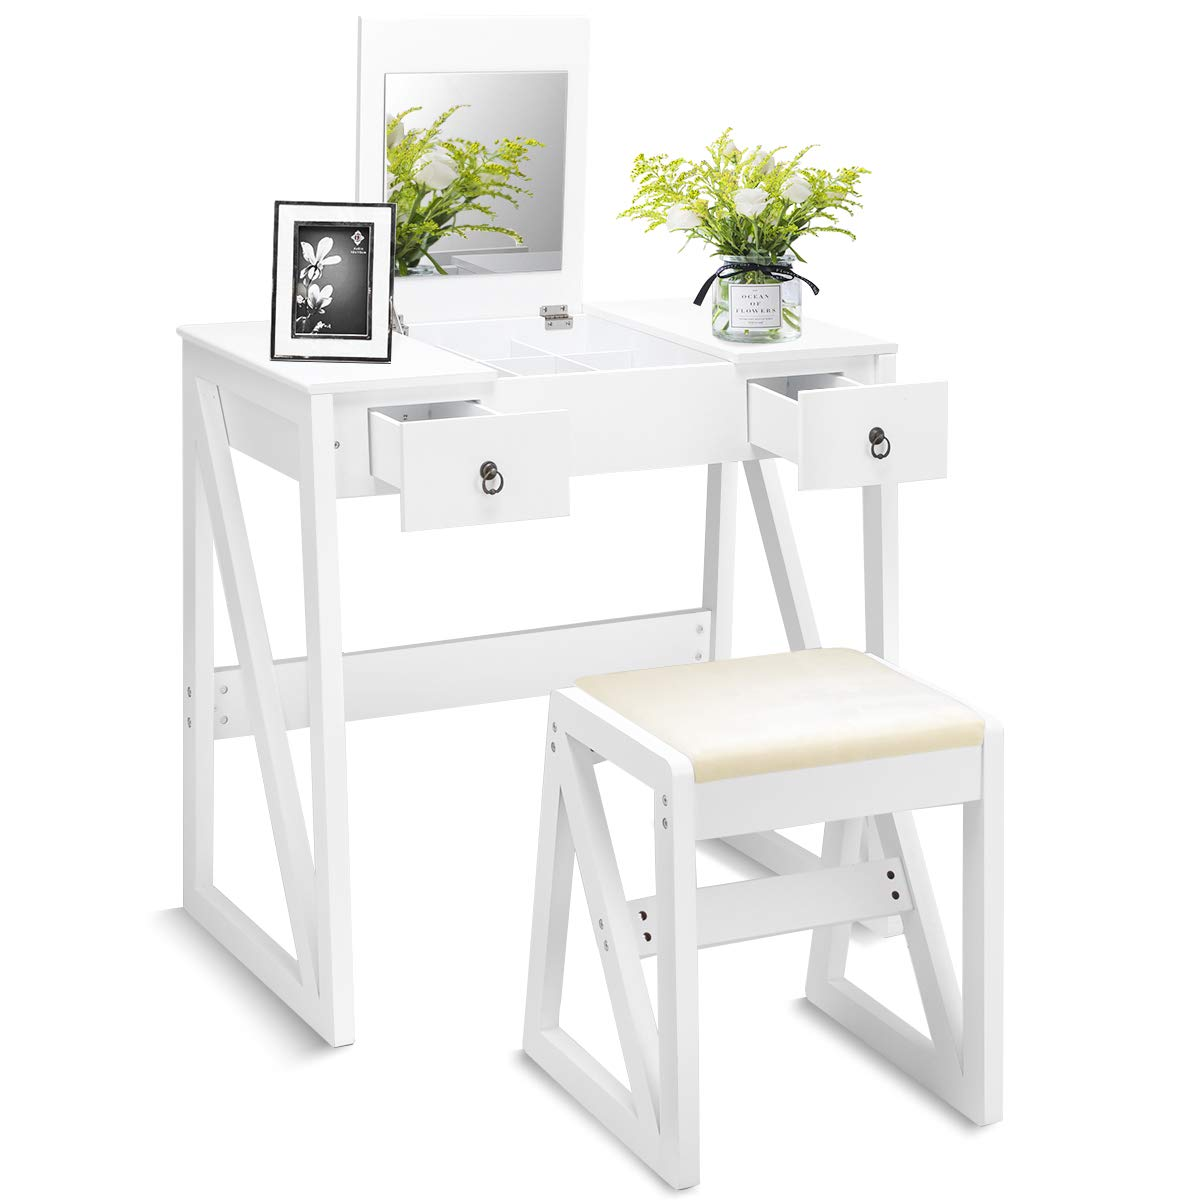 Giantex Vanity Dressing Table Set with Stool and Mirror, Flip Top Mirrored for Makeup 9 Mid Organizers Dual Modern Writing Desks for Home Office Bedroom, Contemporary Vanity Tables Desk w/ 2 Drawers